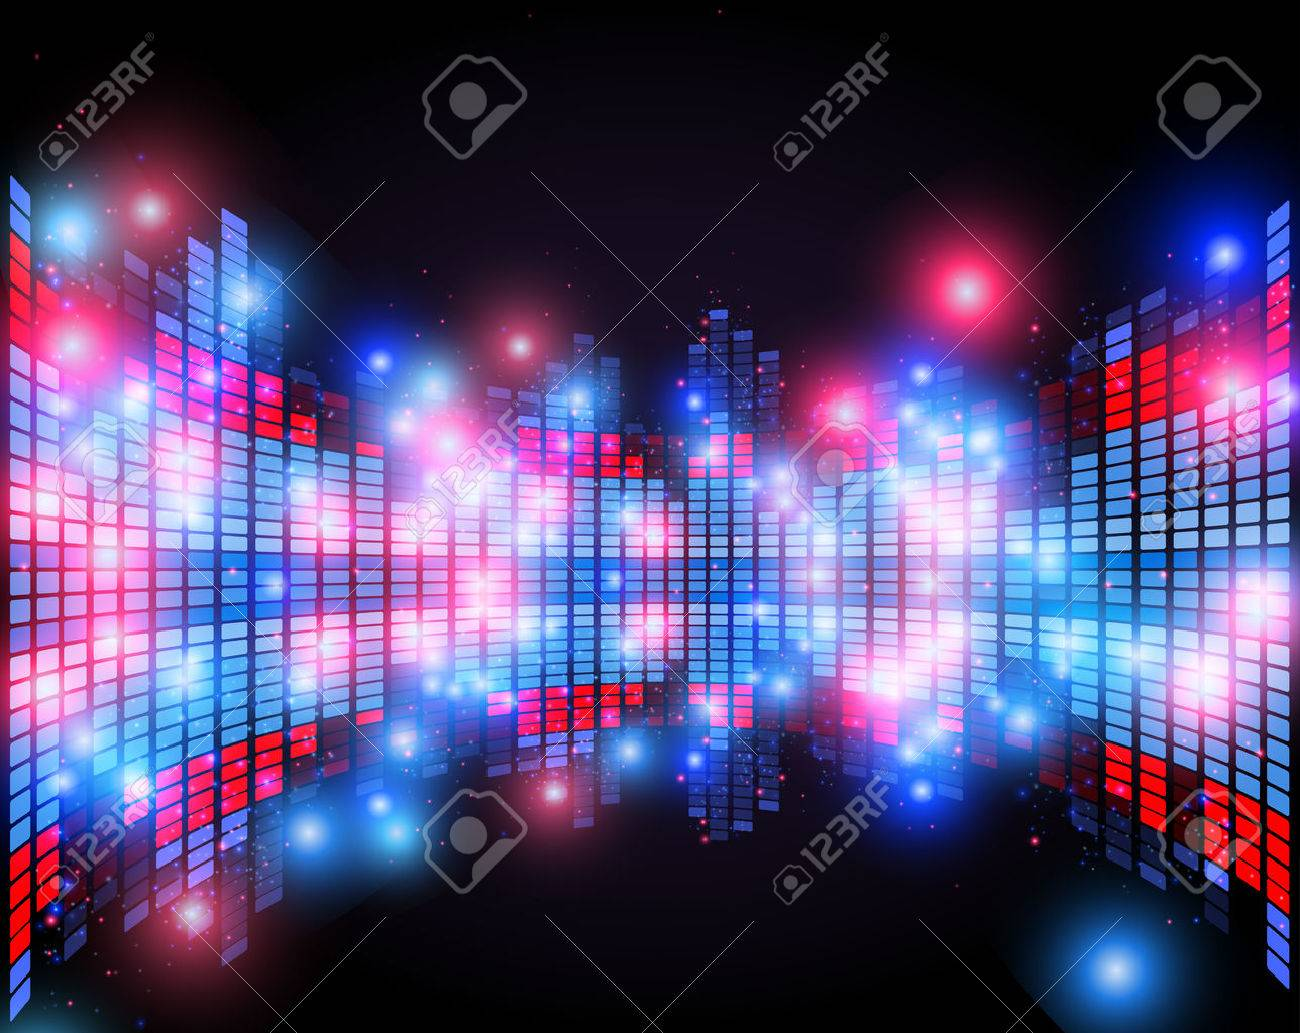 Abstract equalizer with 3d perspective effect , night music club life vector concept - 62510043